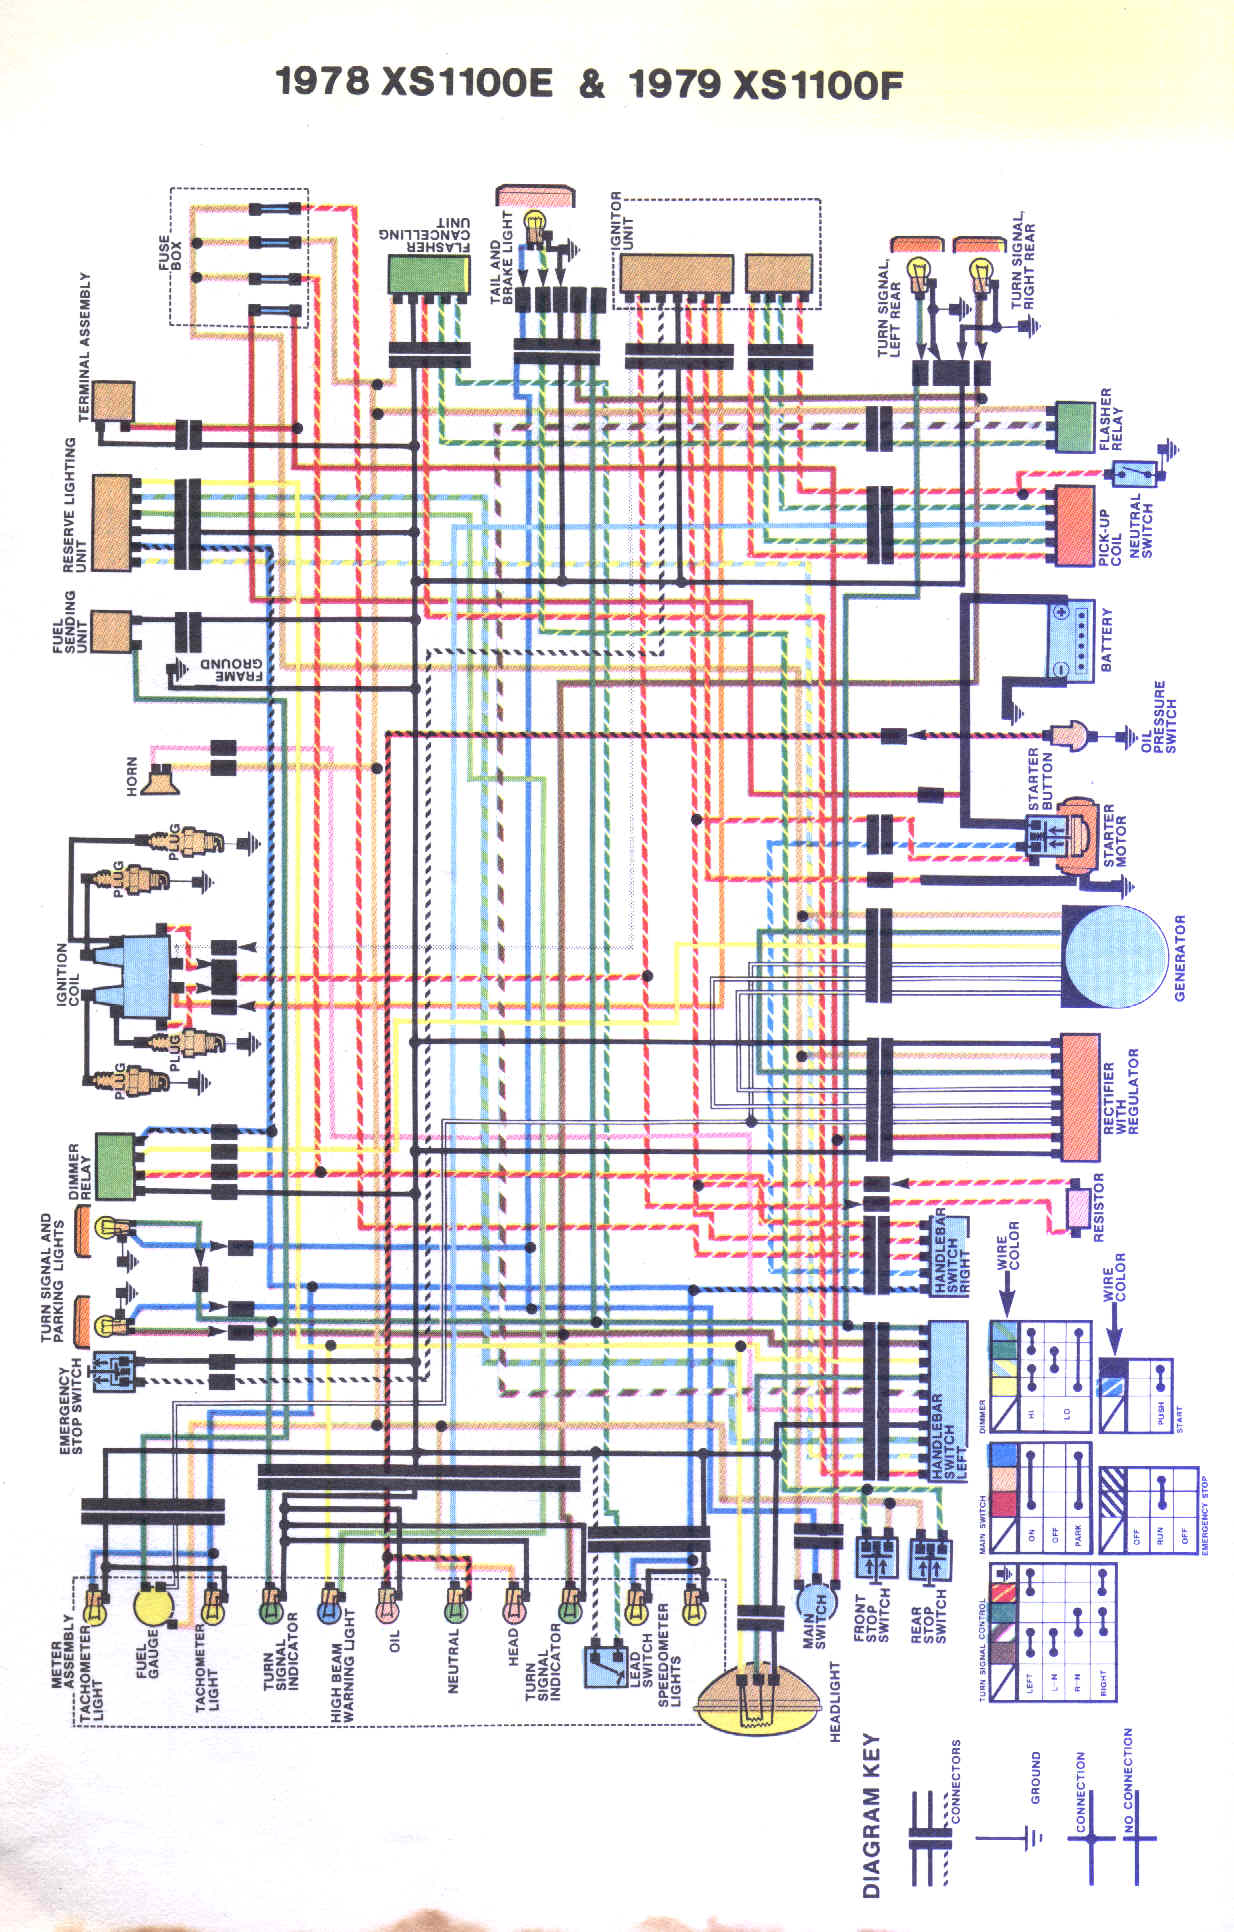 hight resolution of 1979 trans am headlight wiring diagram captain source of wiring rh rosepettal com 1977 trans am 1981 pontiac trans am fuse box diagram